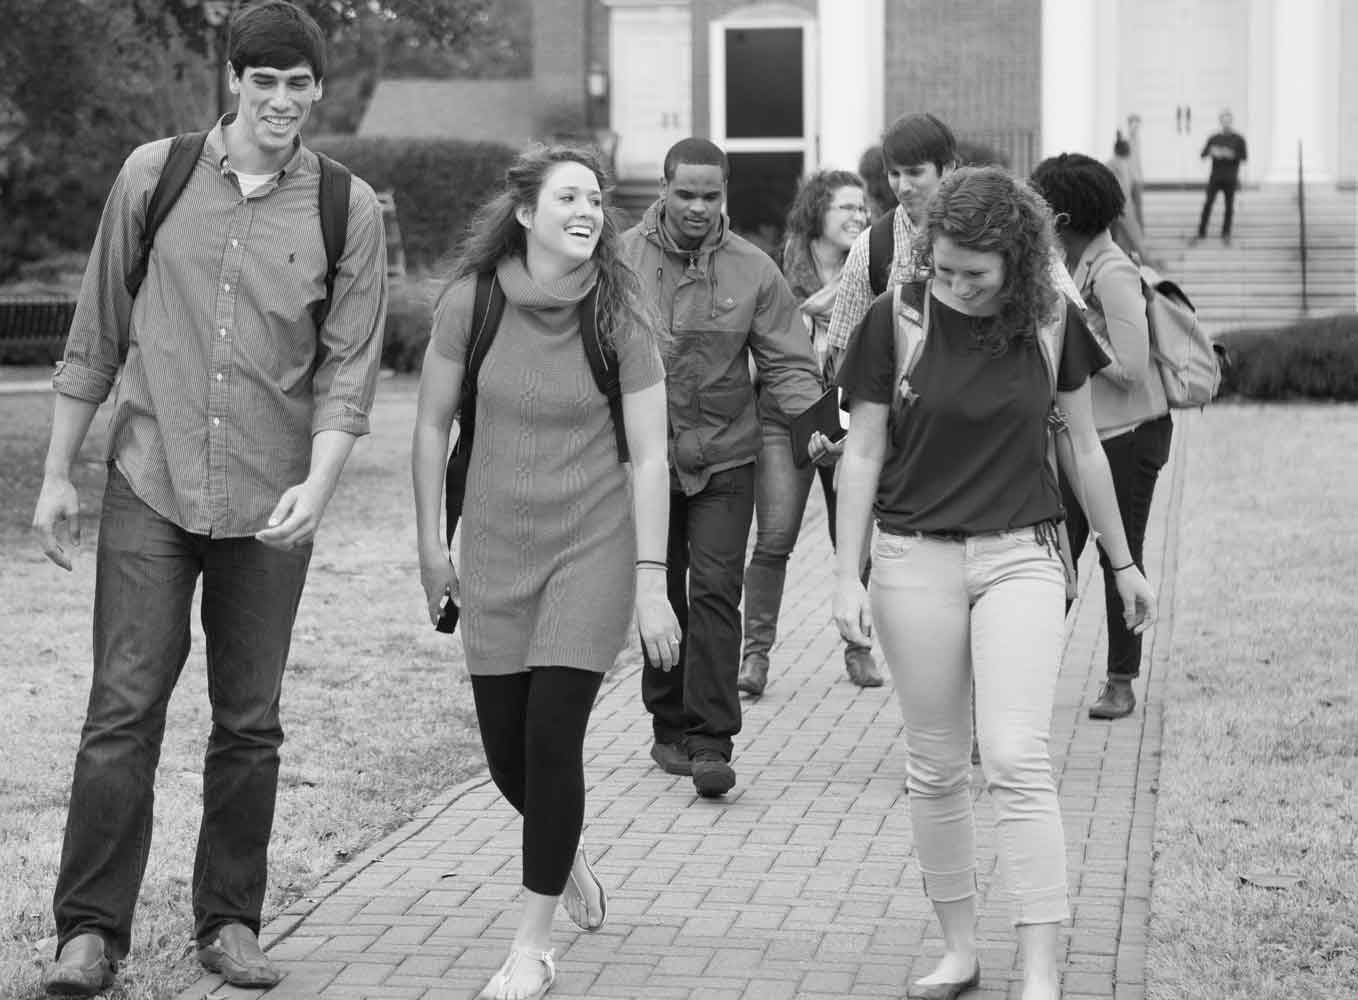 students walking to class laughing